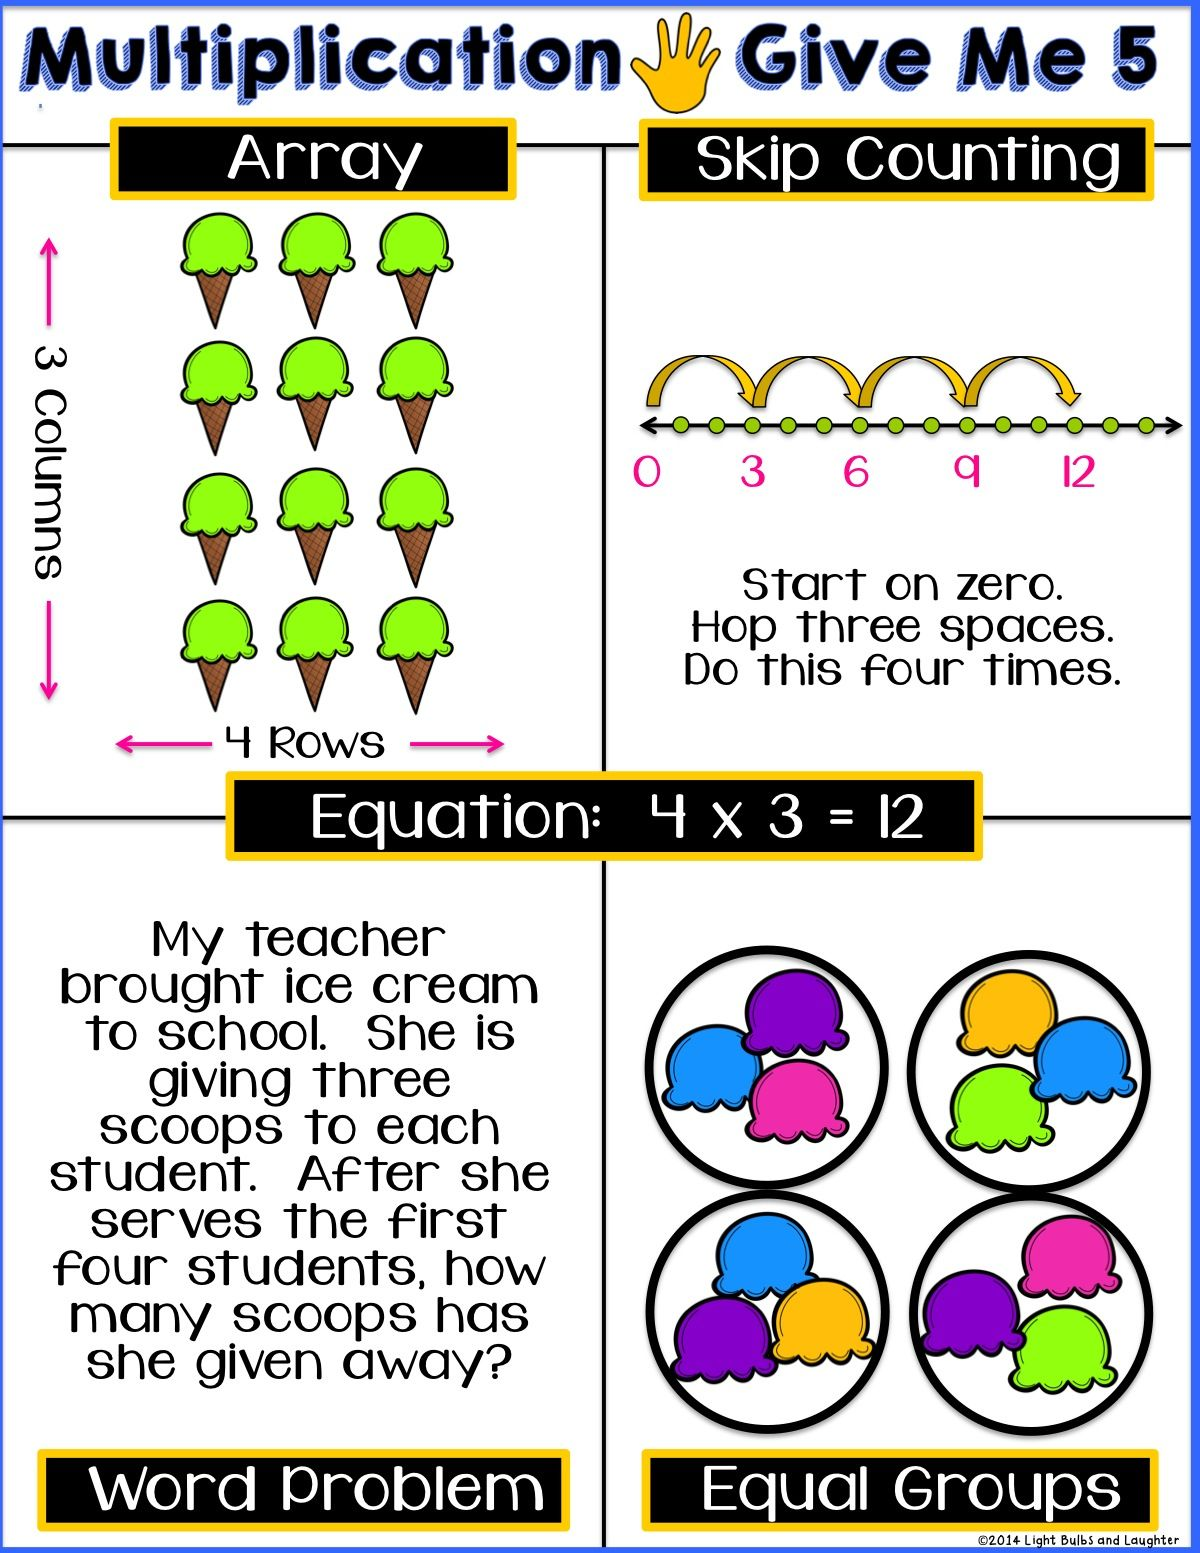 Free Multiplication Give Me 5 Poster | Elementary Education ...